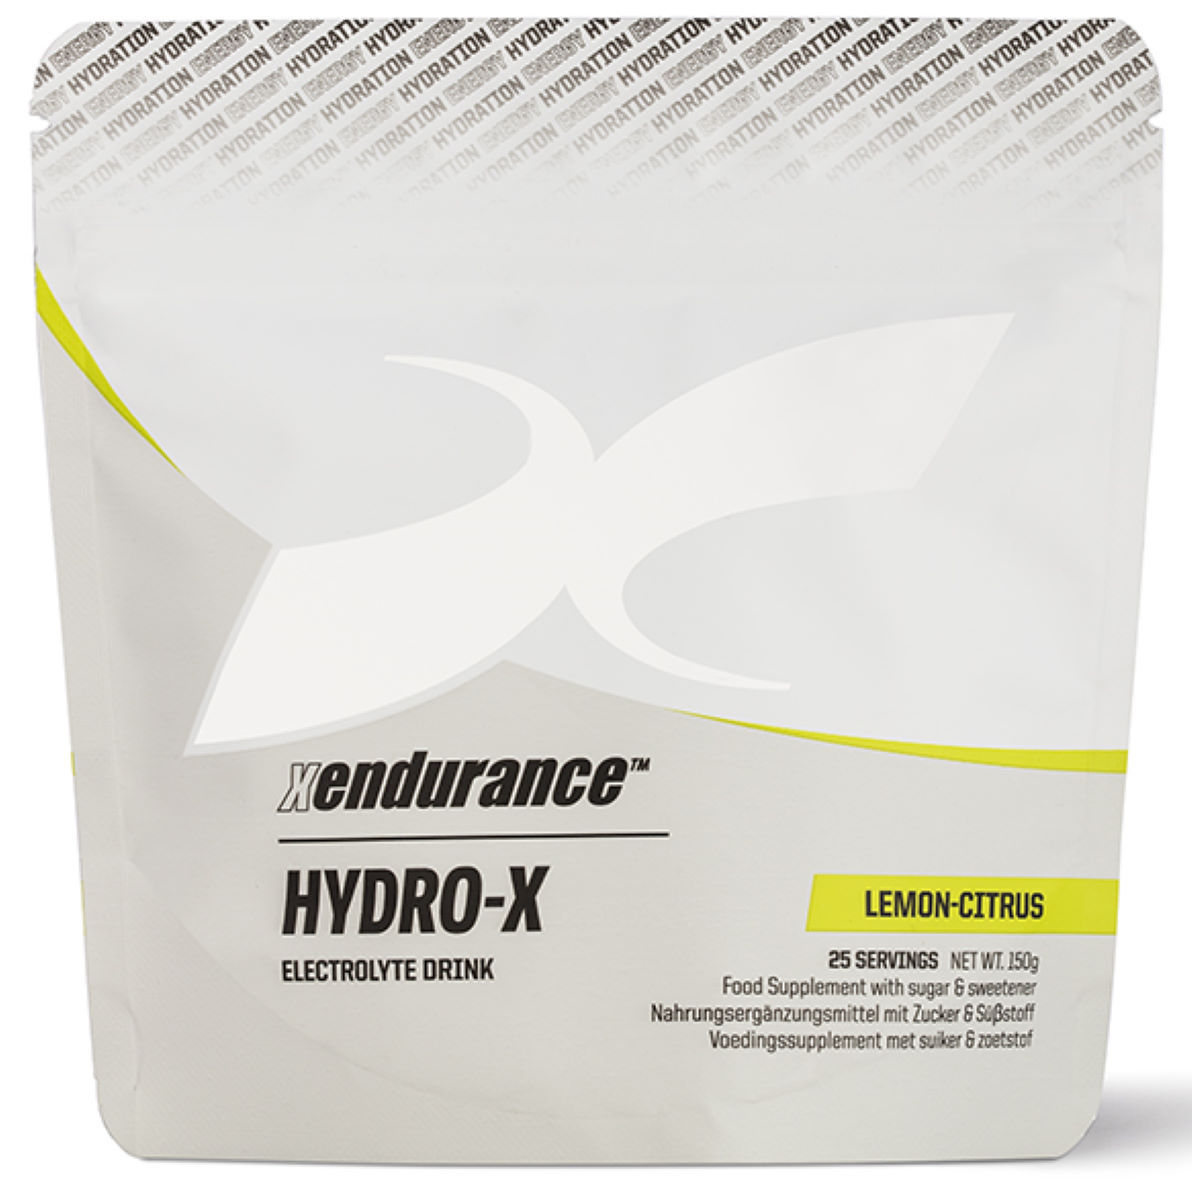 Image of Poudre Xendurance Hydro-X Hydration & Energy - 150g Citrus